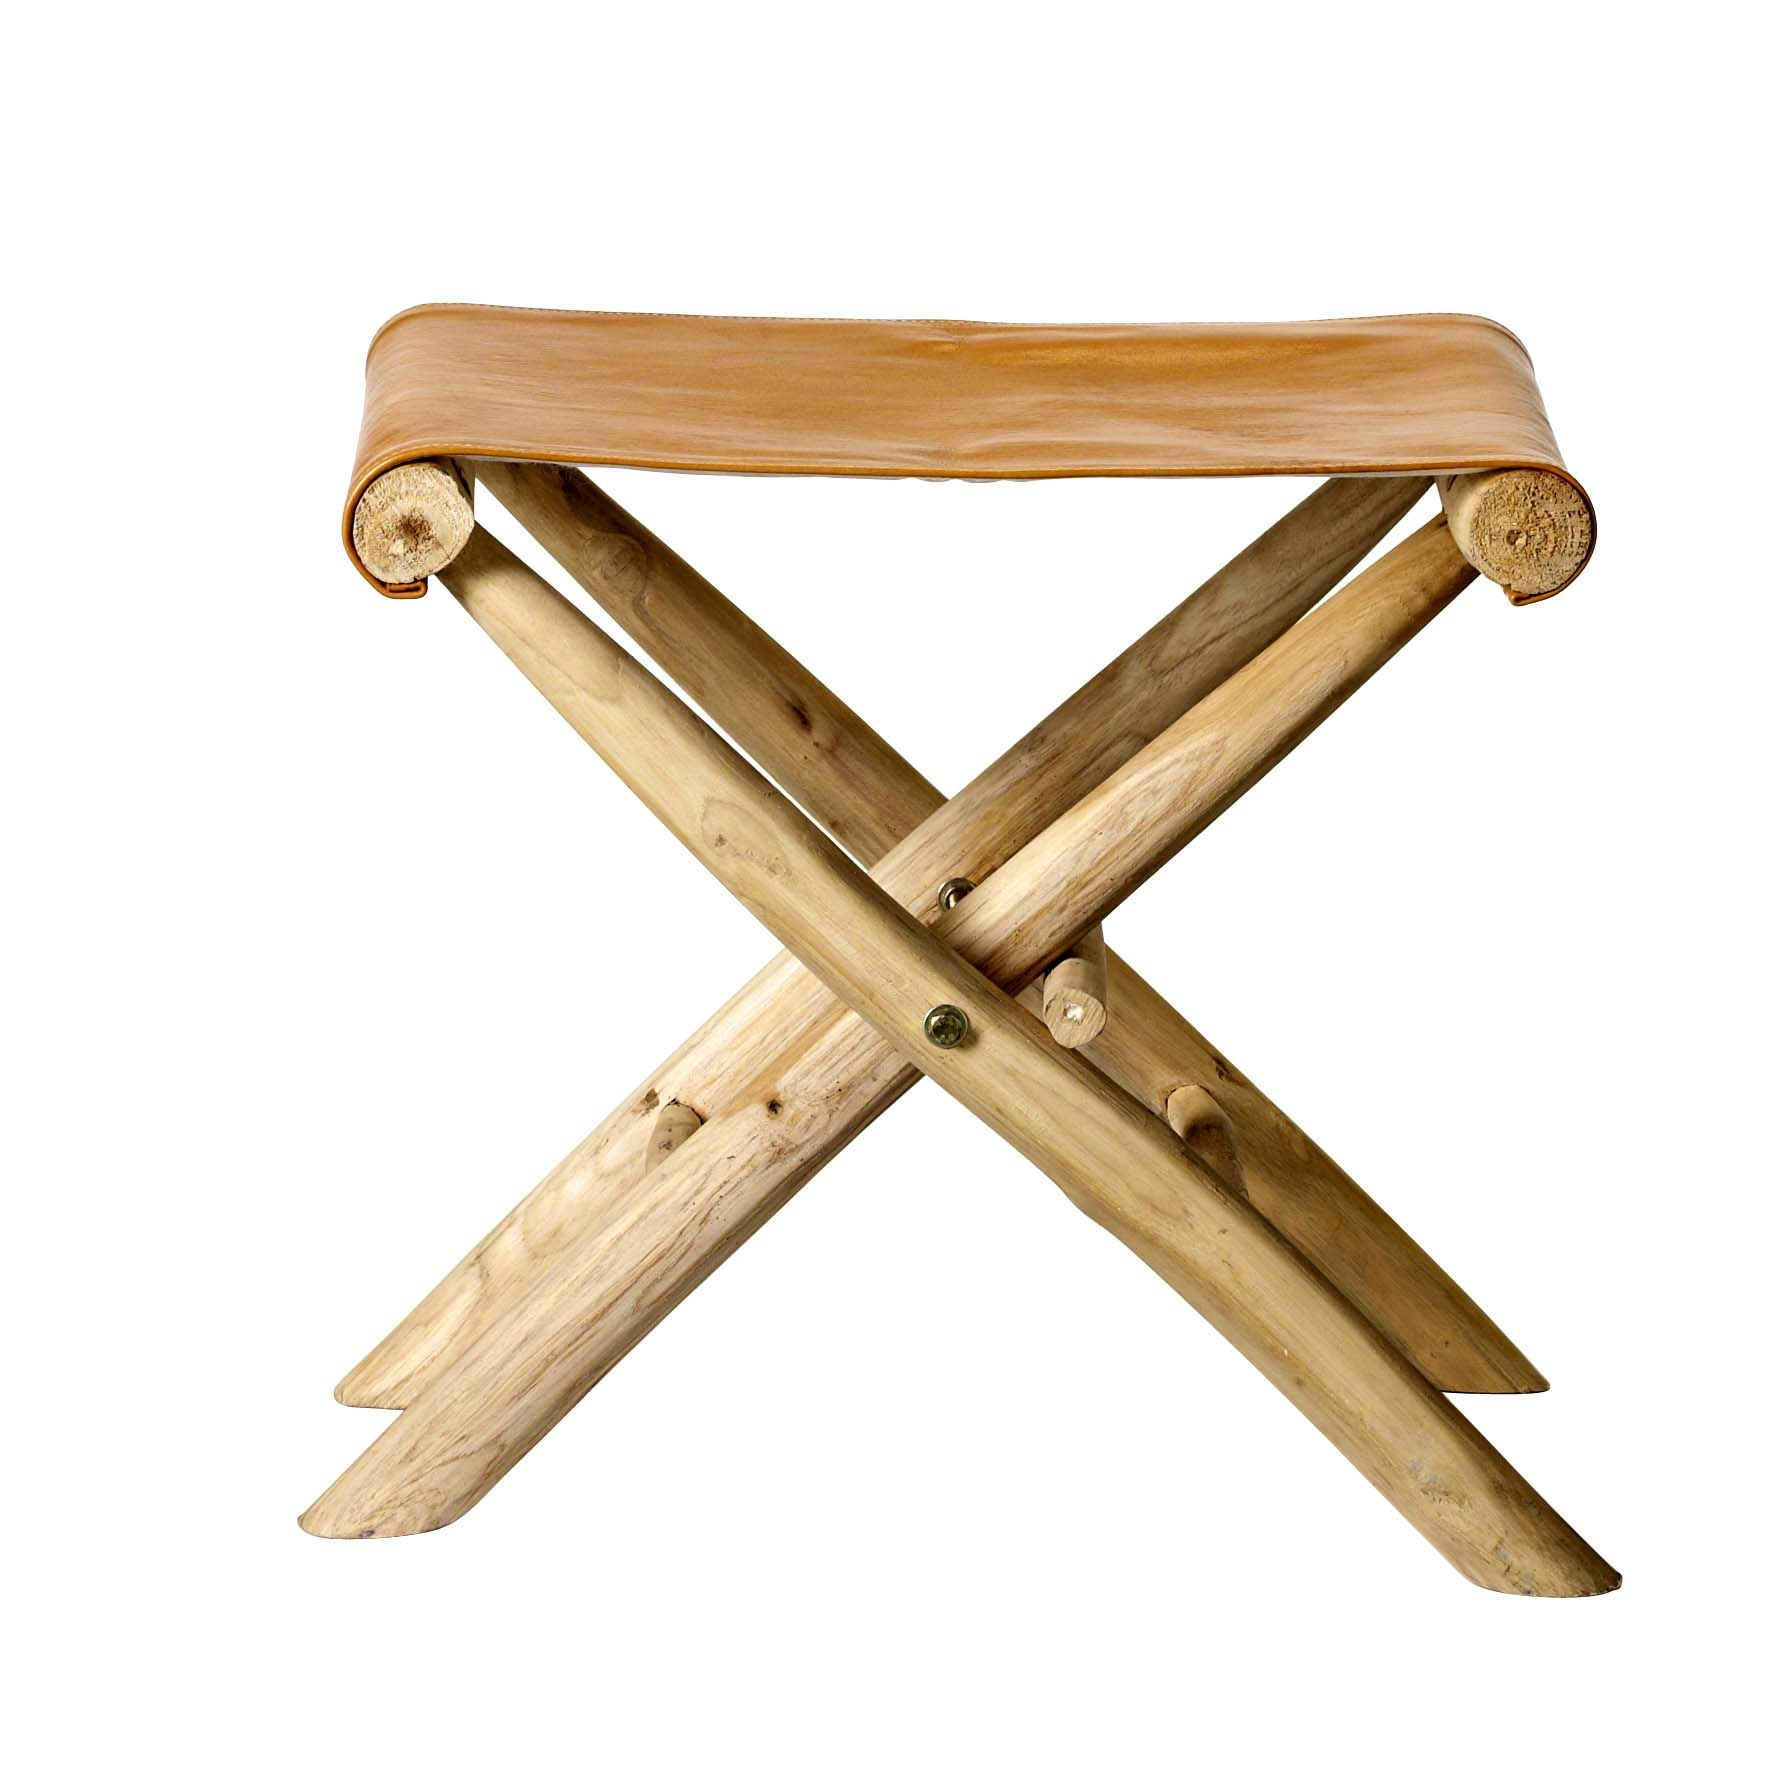 Online Möbelversand Fab Stool From Bloomingville Natural Wood With Leather